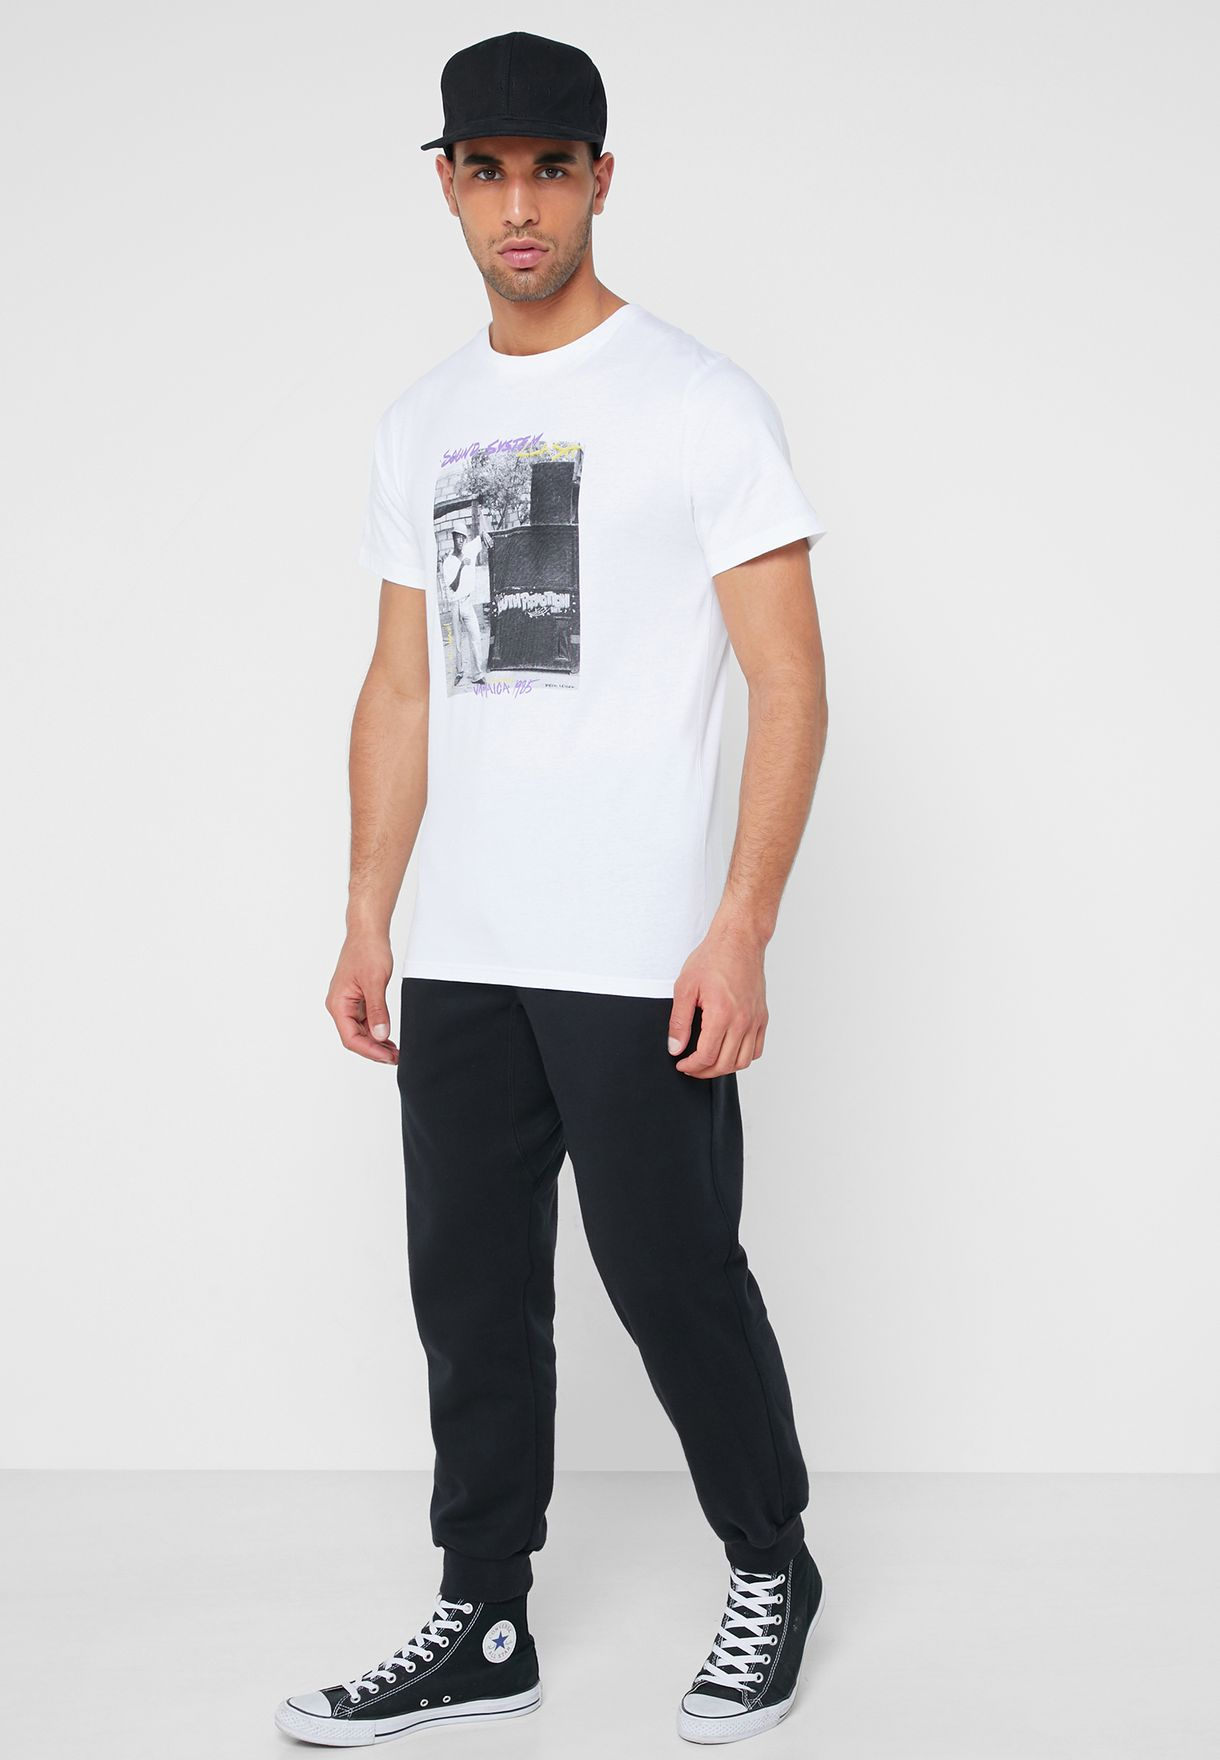 Stockholm Sound Graphic Crew Neck T-Shirt